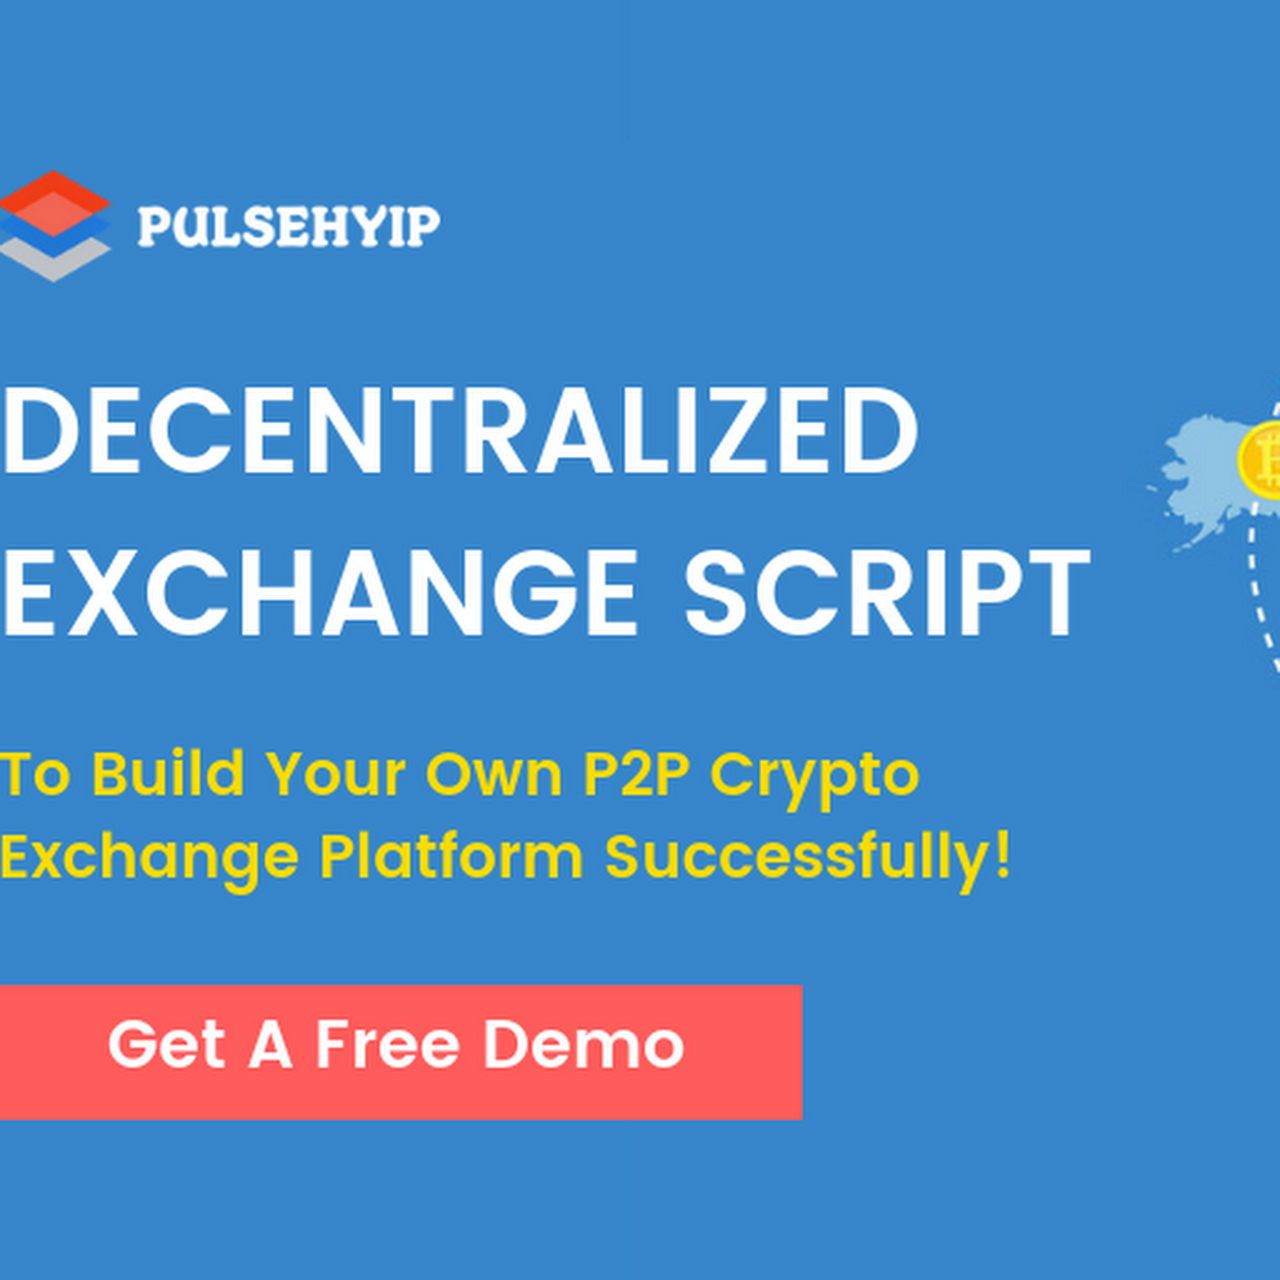 Pulsehyip - Cryptocurrency Investment & Blockchain